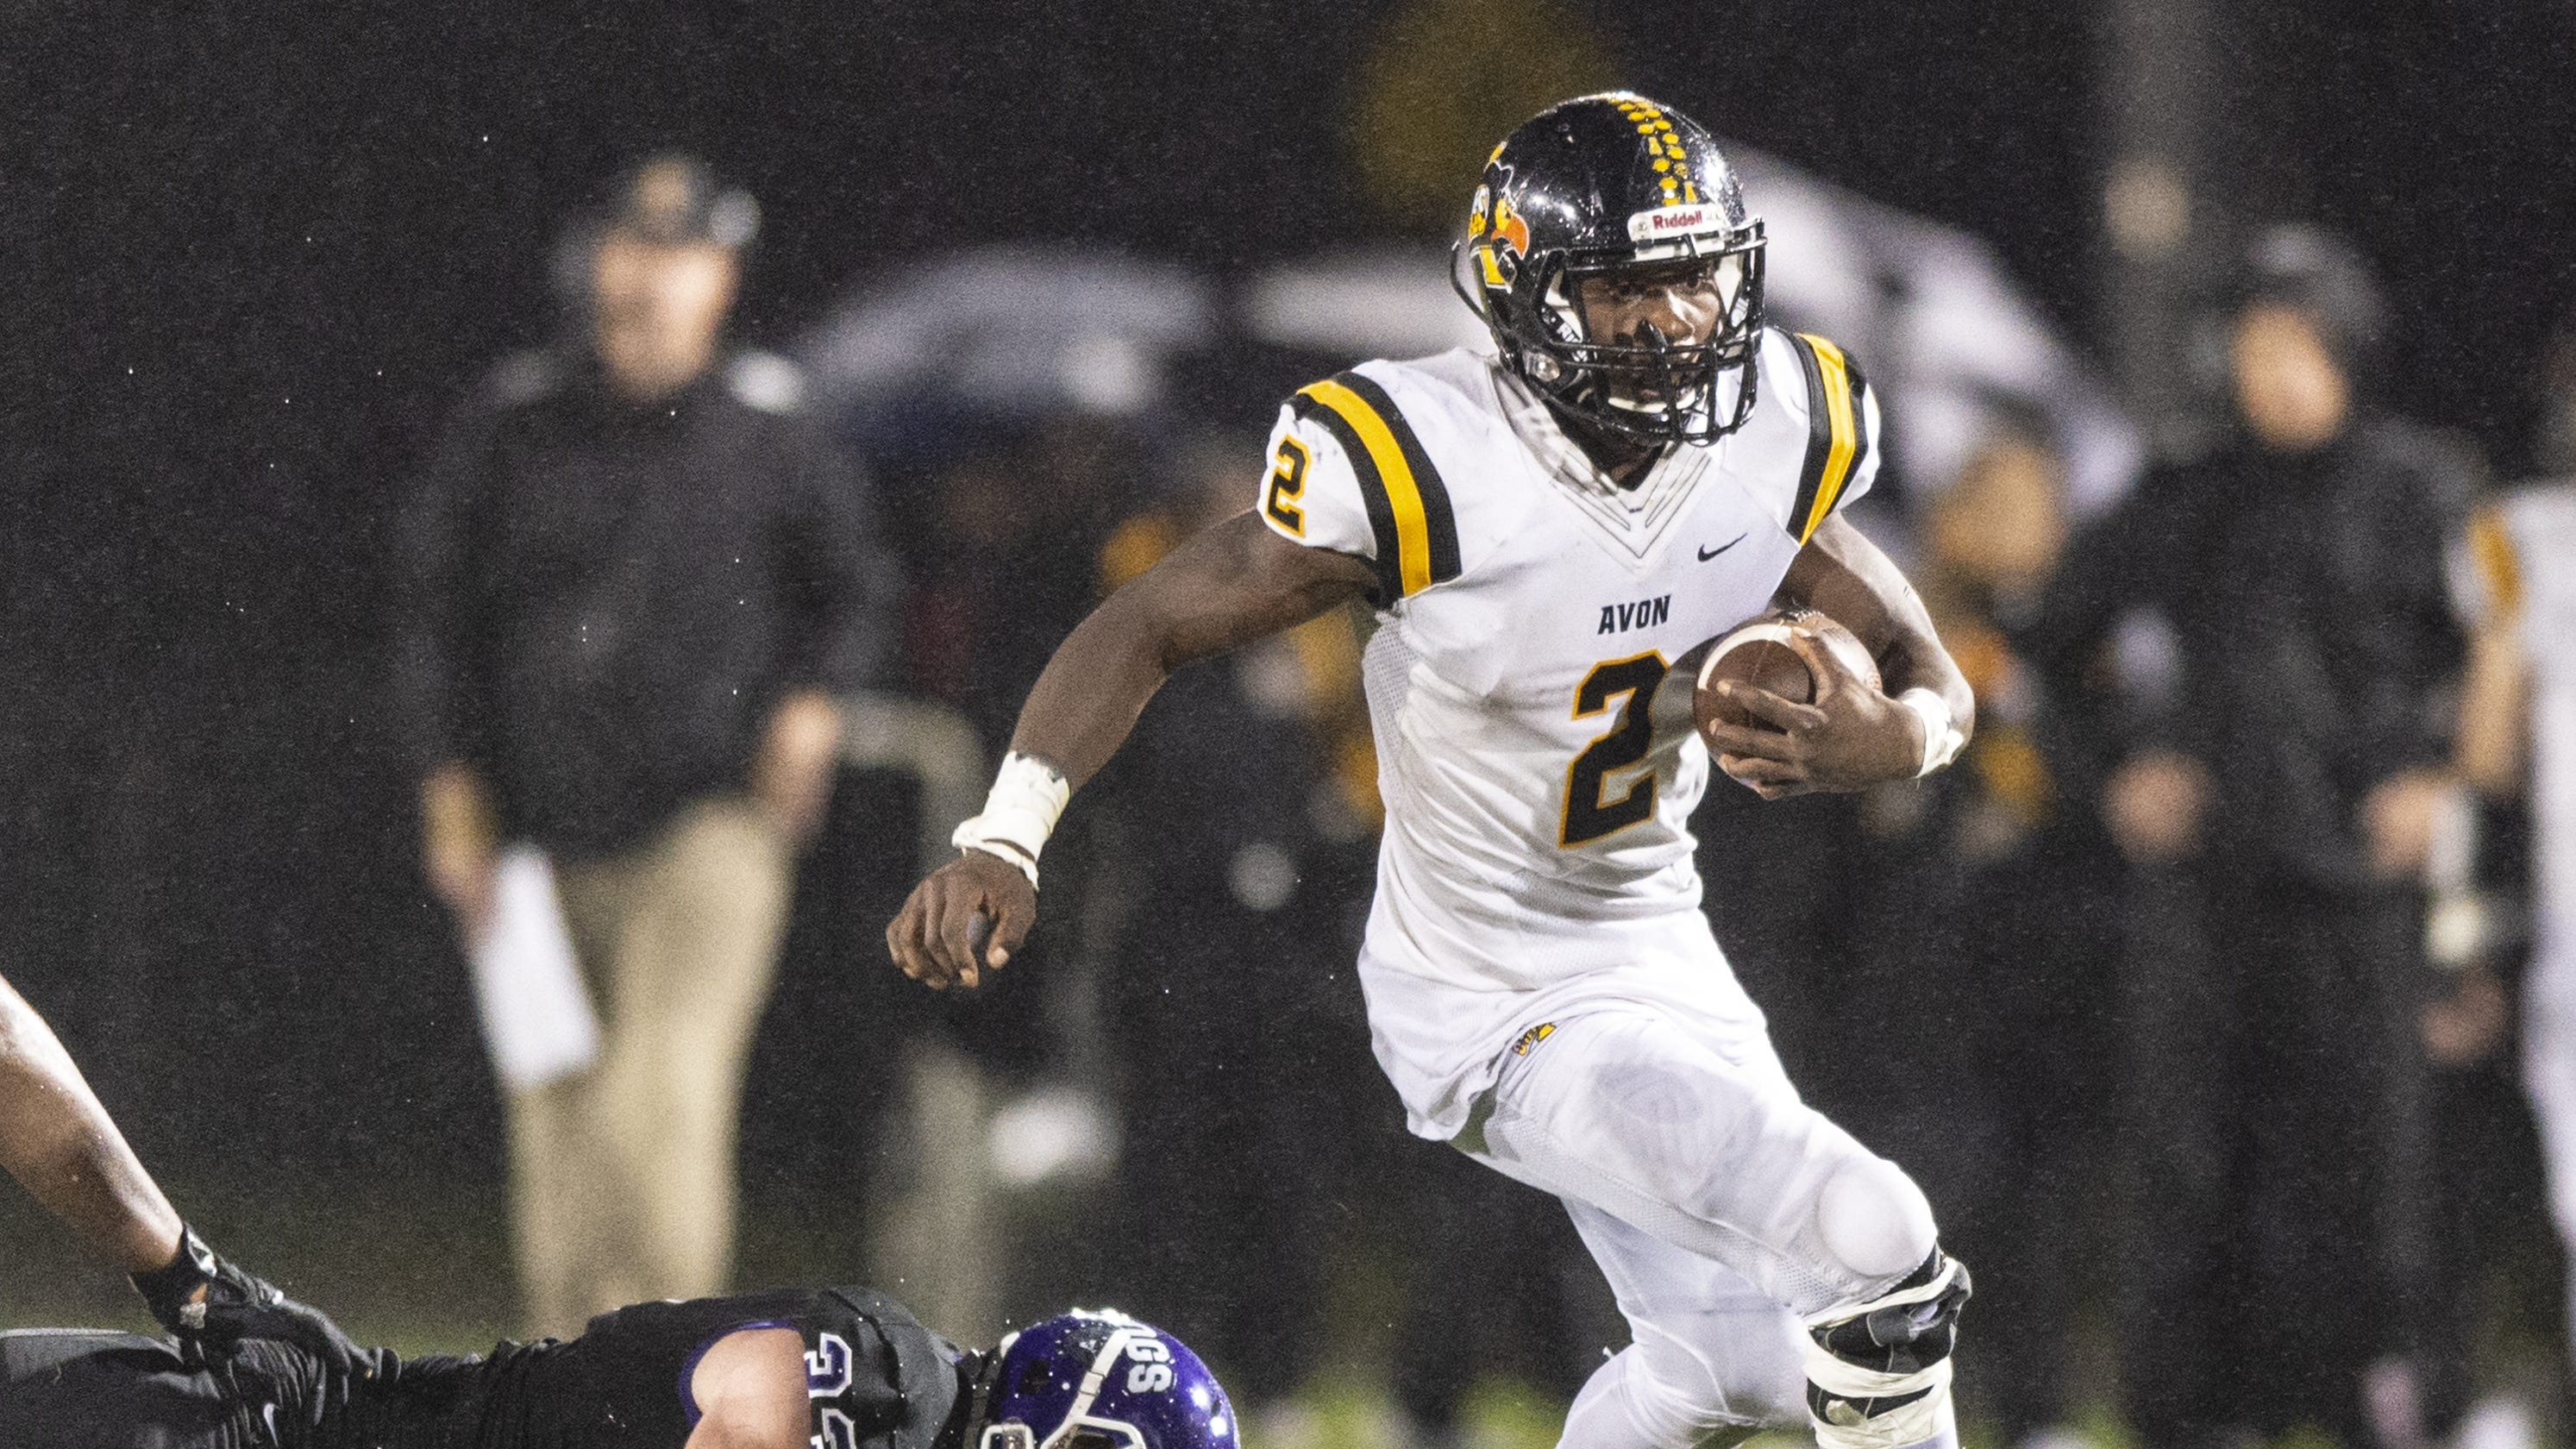 Avon RB Sampson James commits to IU football after dropping